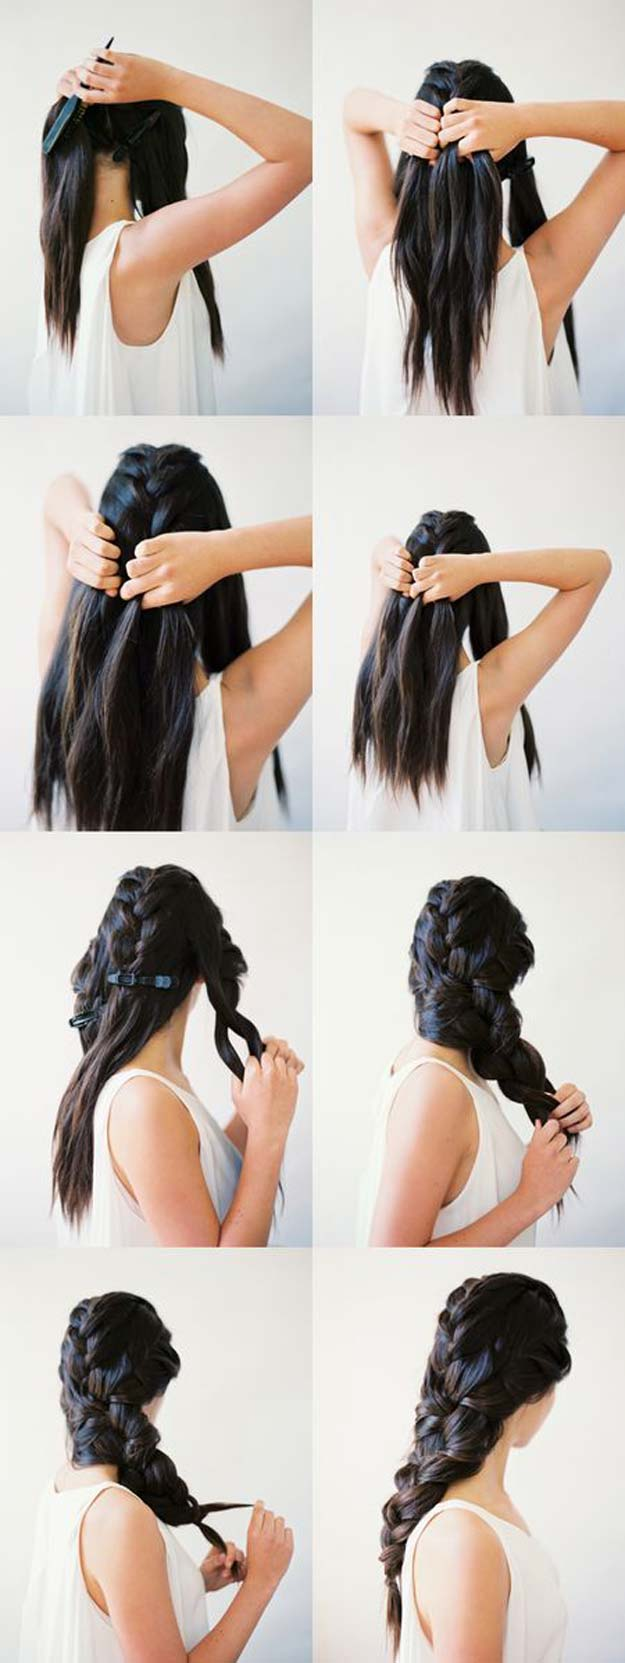 12 DIY Cool Easy Hairstyles That Real People Can Do at Home - DIY